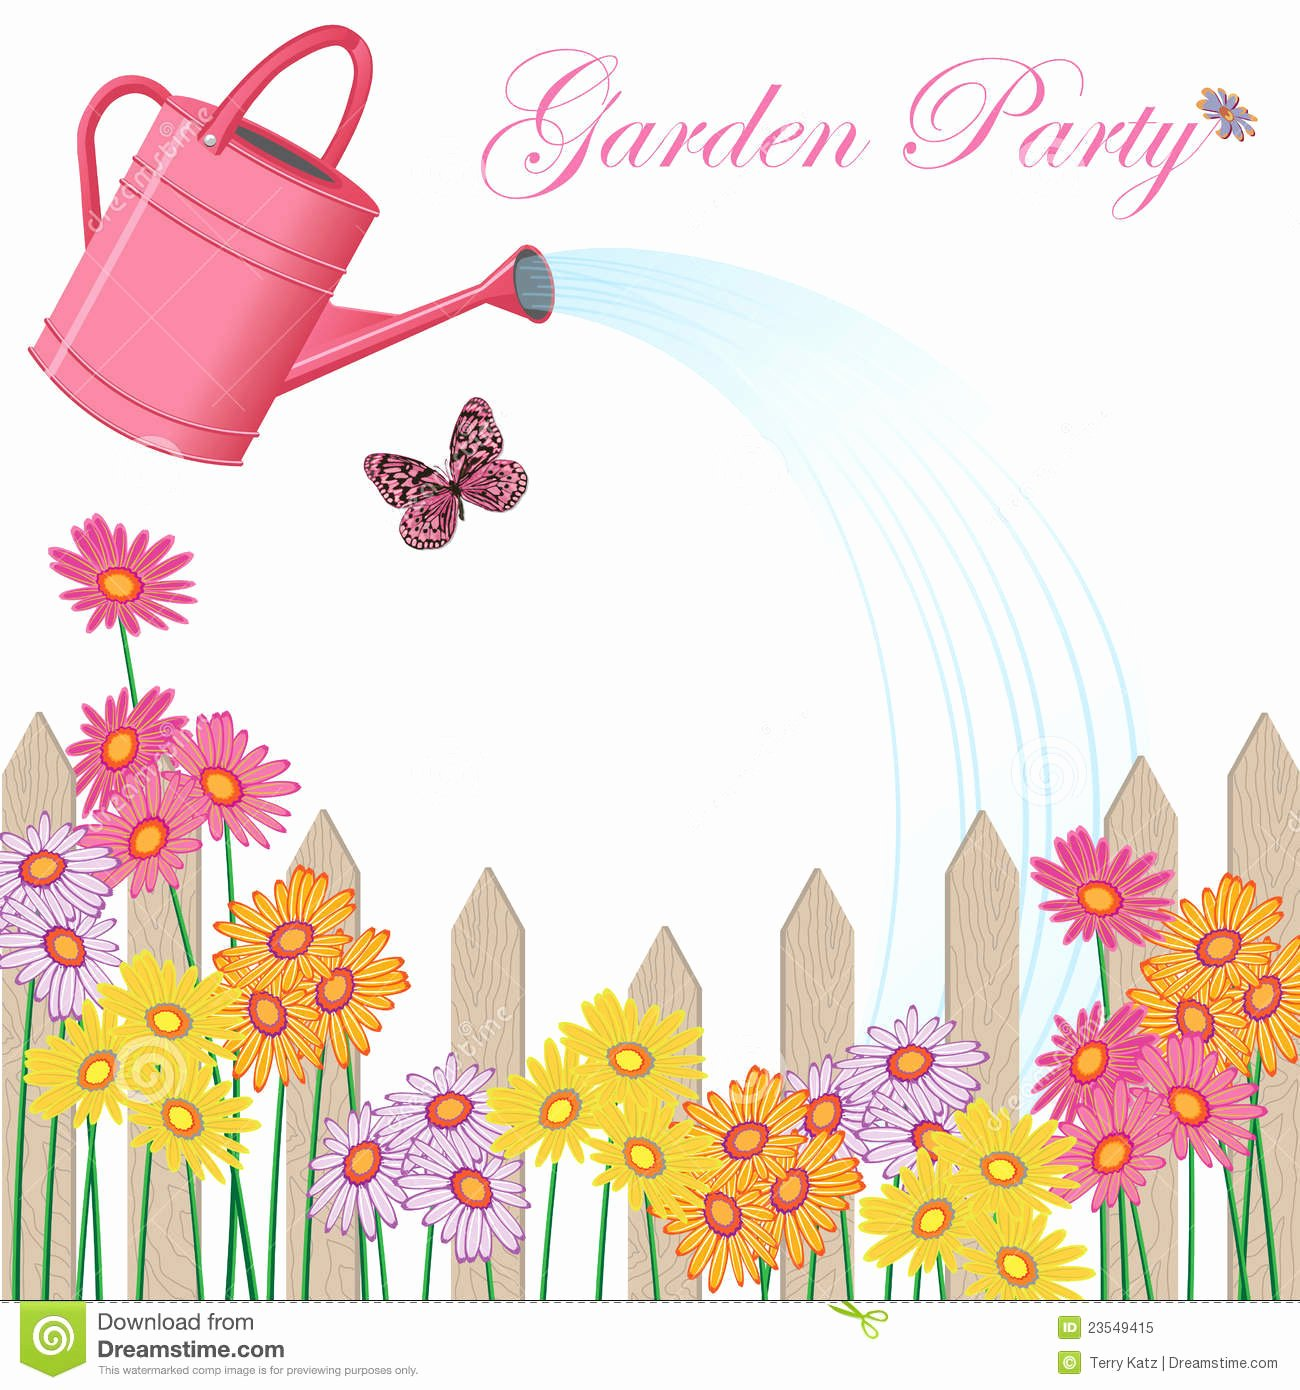 Garden Party Invite Template Luxury Garden Party Invitation Royalty Free Stock Image